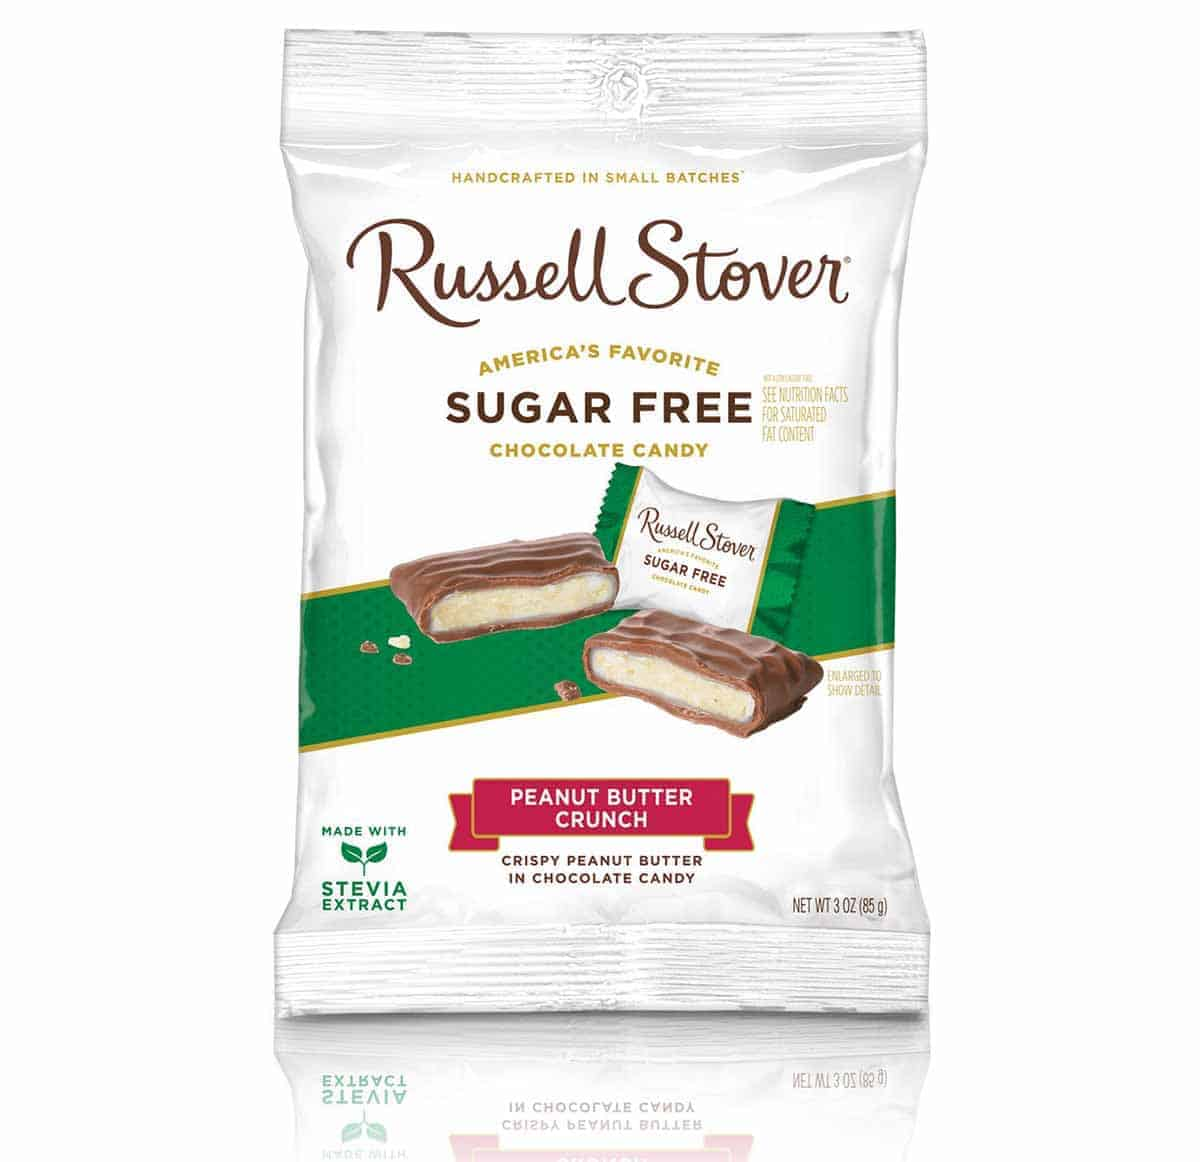 A bag of Russell Stover Sugar free Peanut Butter Crunch Chocolate Candies